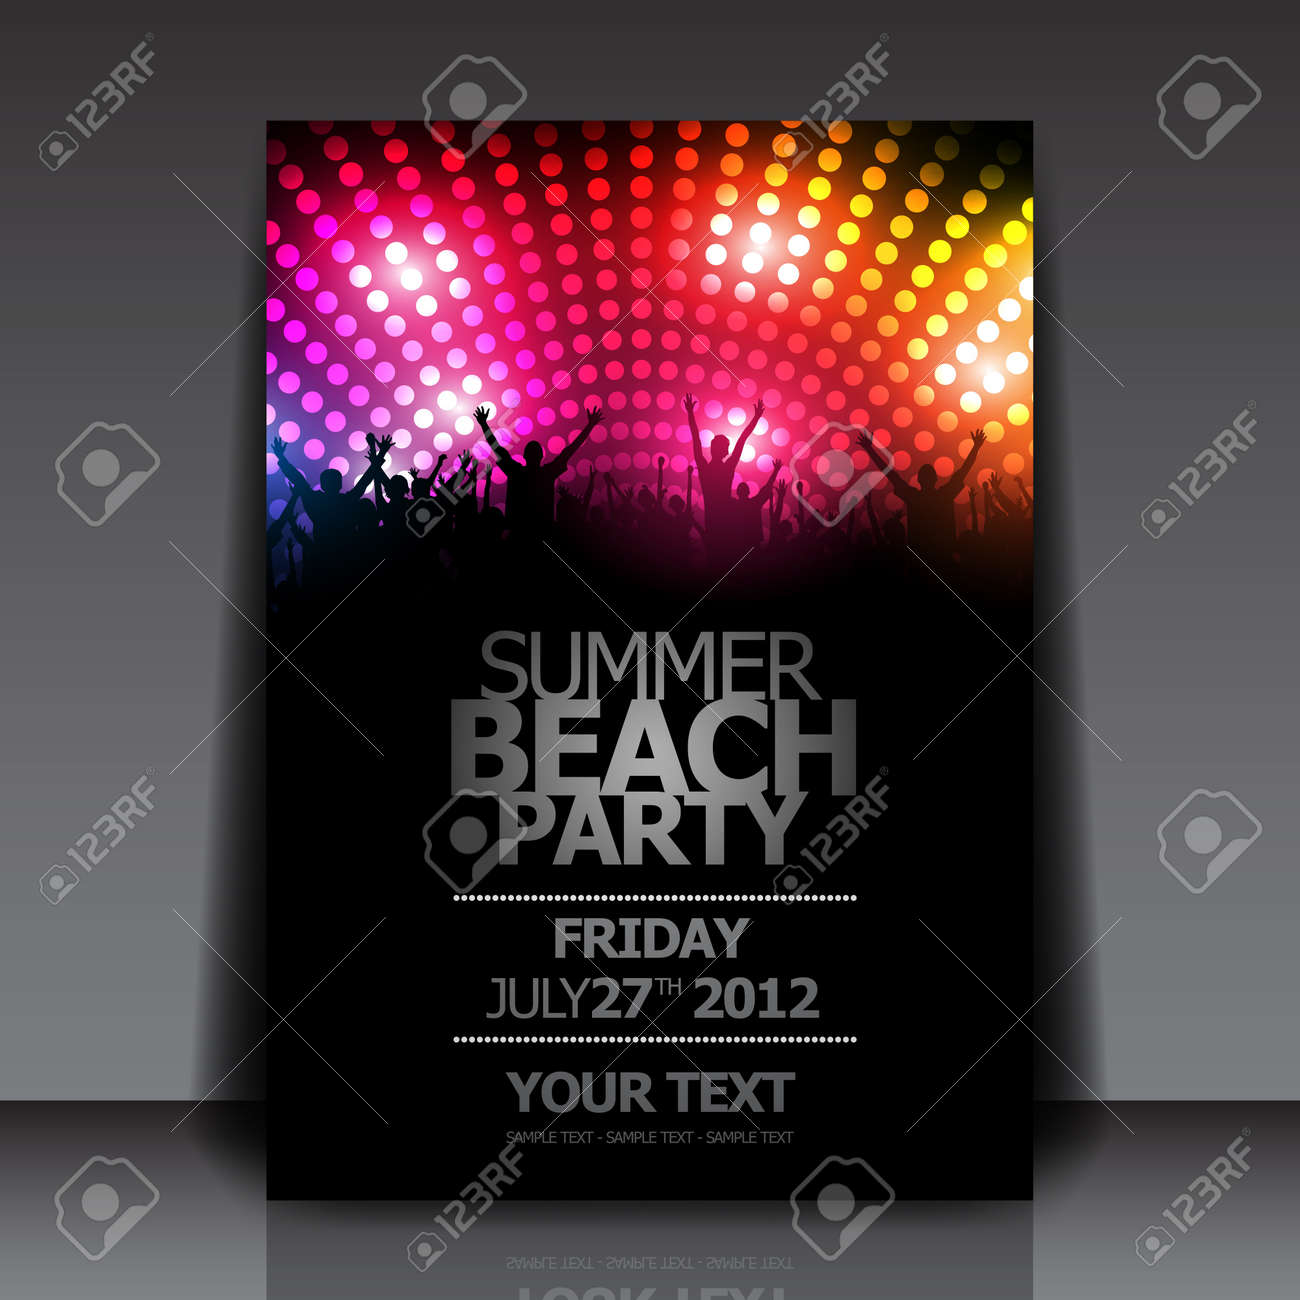 party flyer background anuvrat info summer beach party flyer template vector design royalty